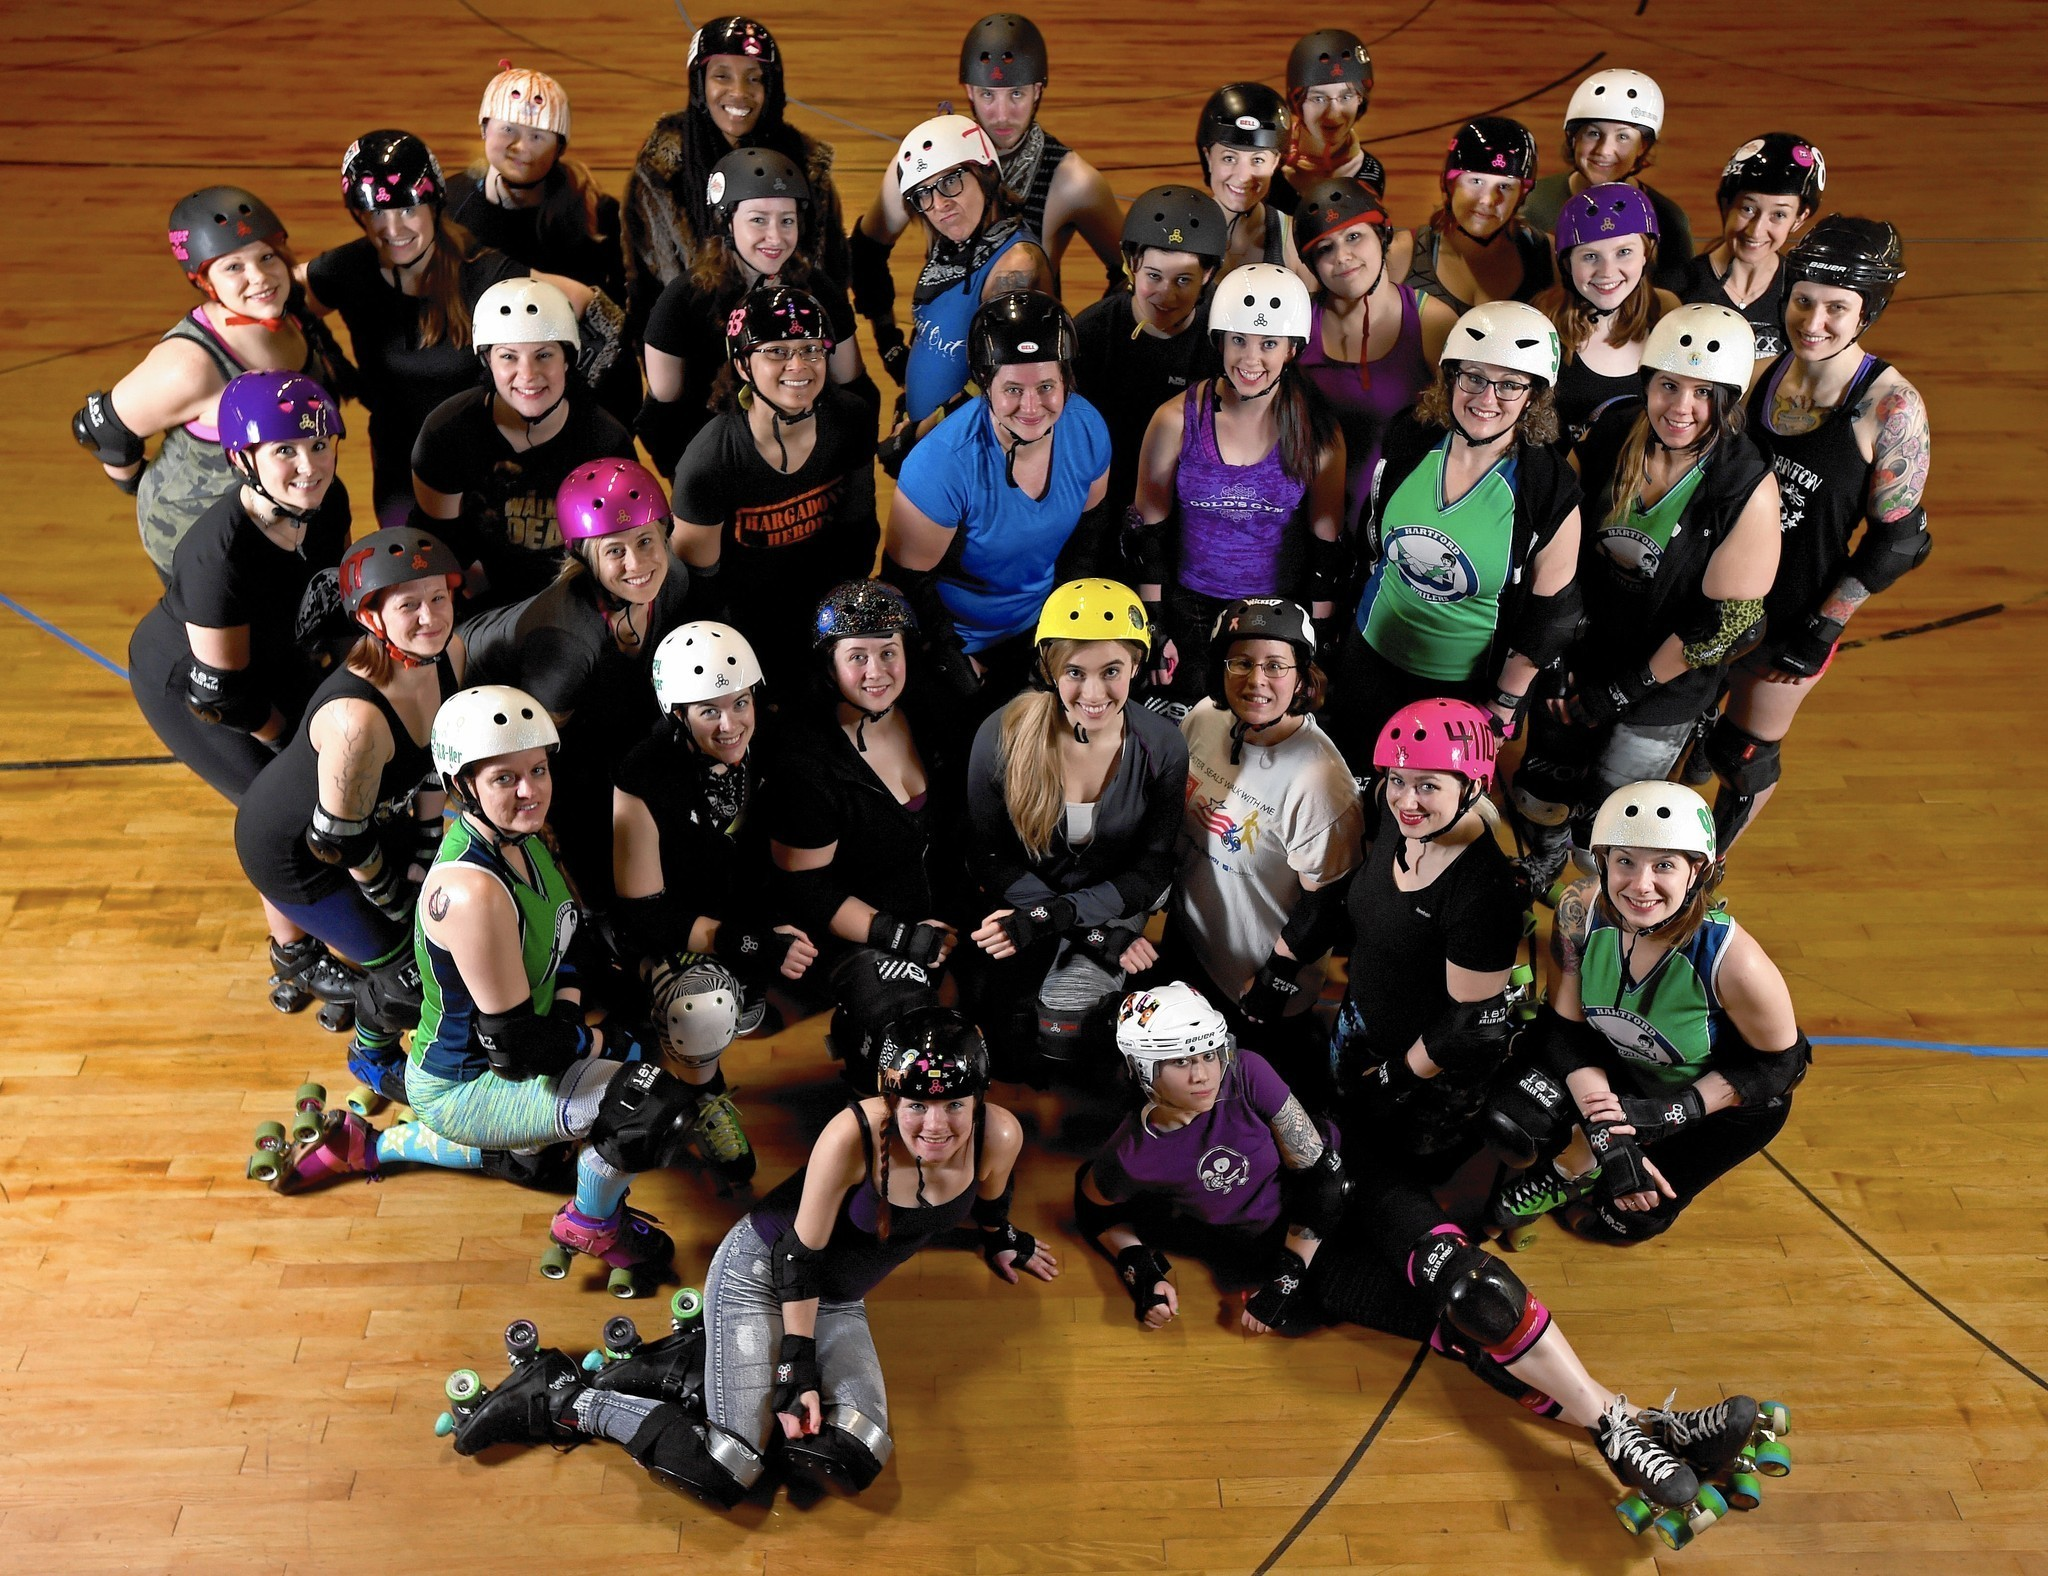 Roller skating rink vernon ct